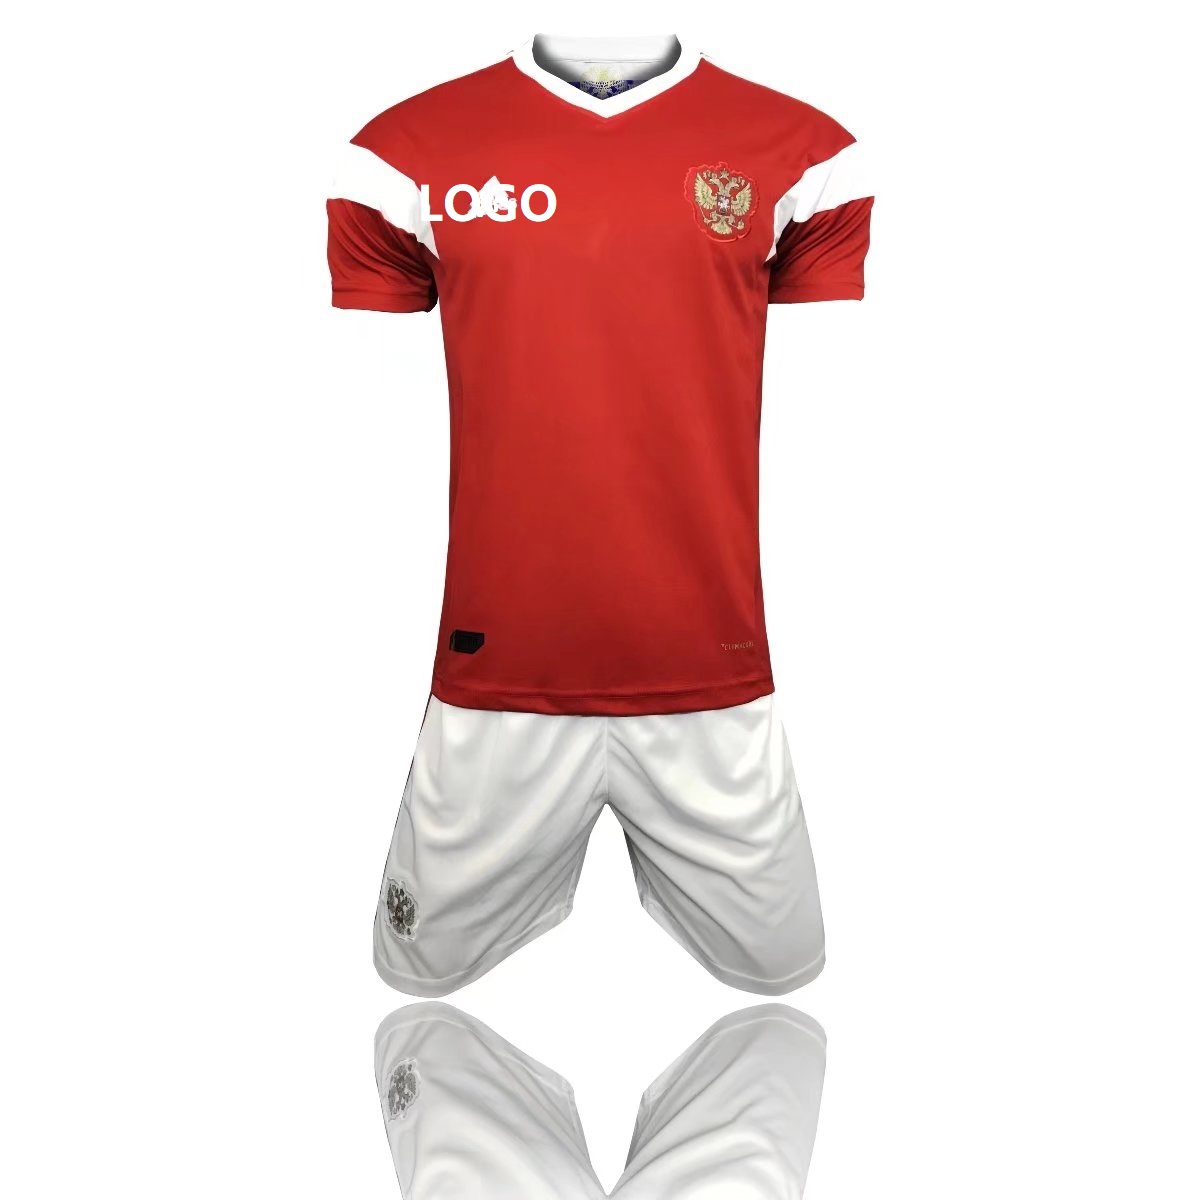 babfcbce05176 2018 Russia World Cup Adult Russia Home Red/white Soccer Uniform Men  Football Kits Custom Name Number